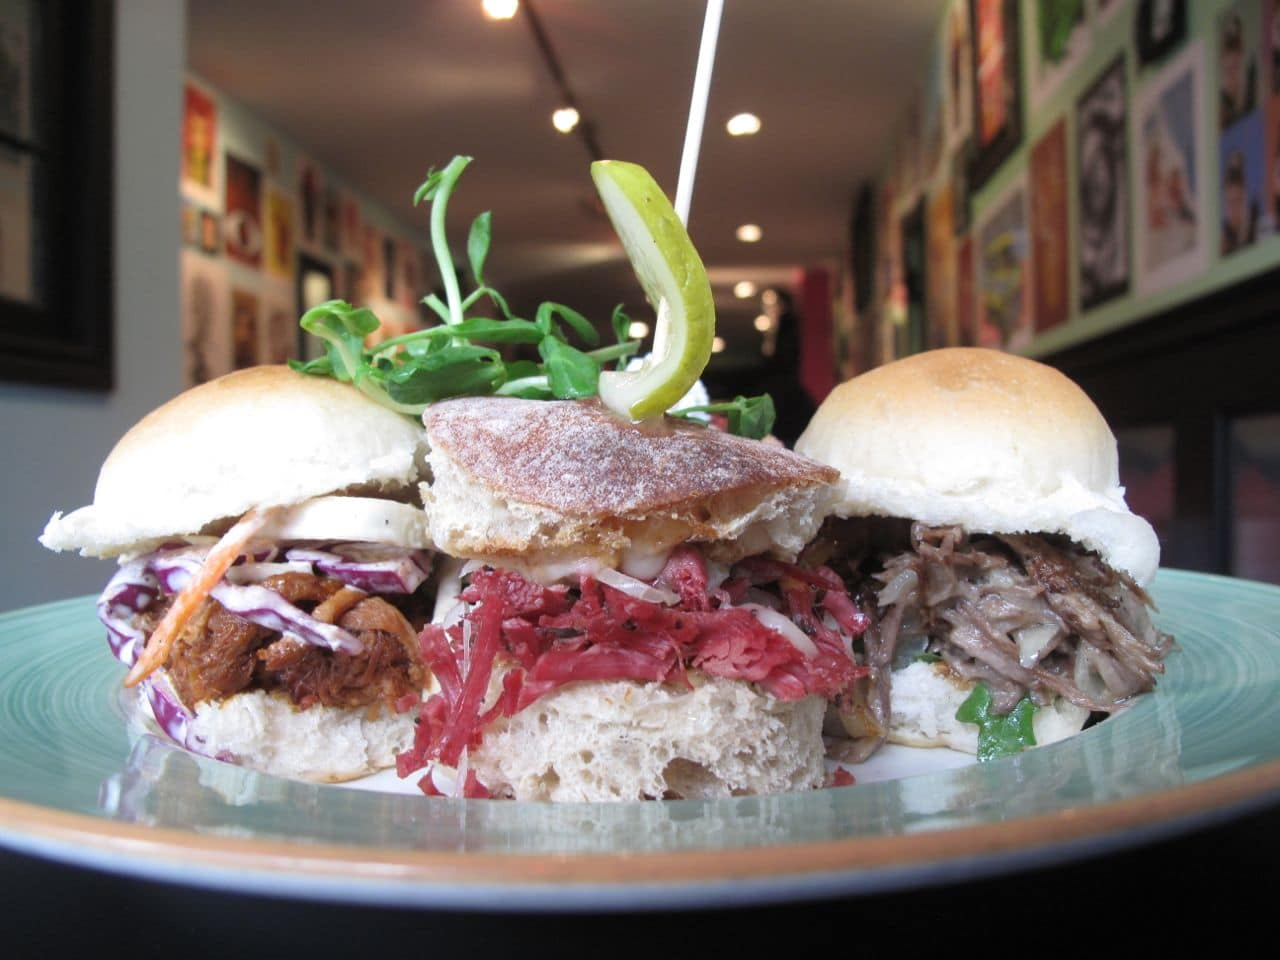 Slider Sampler at The Early Bird London featuring braised duck, smoked meat and pulled pork.